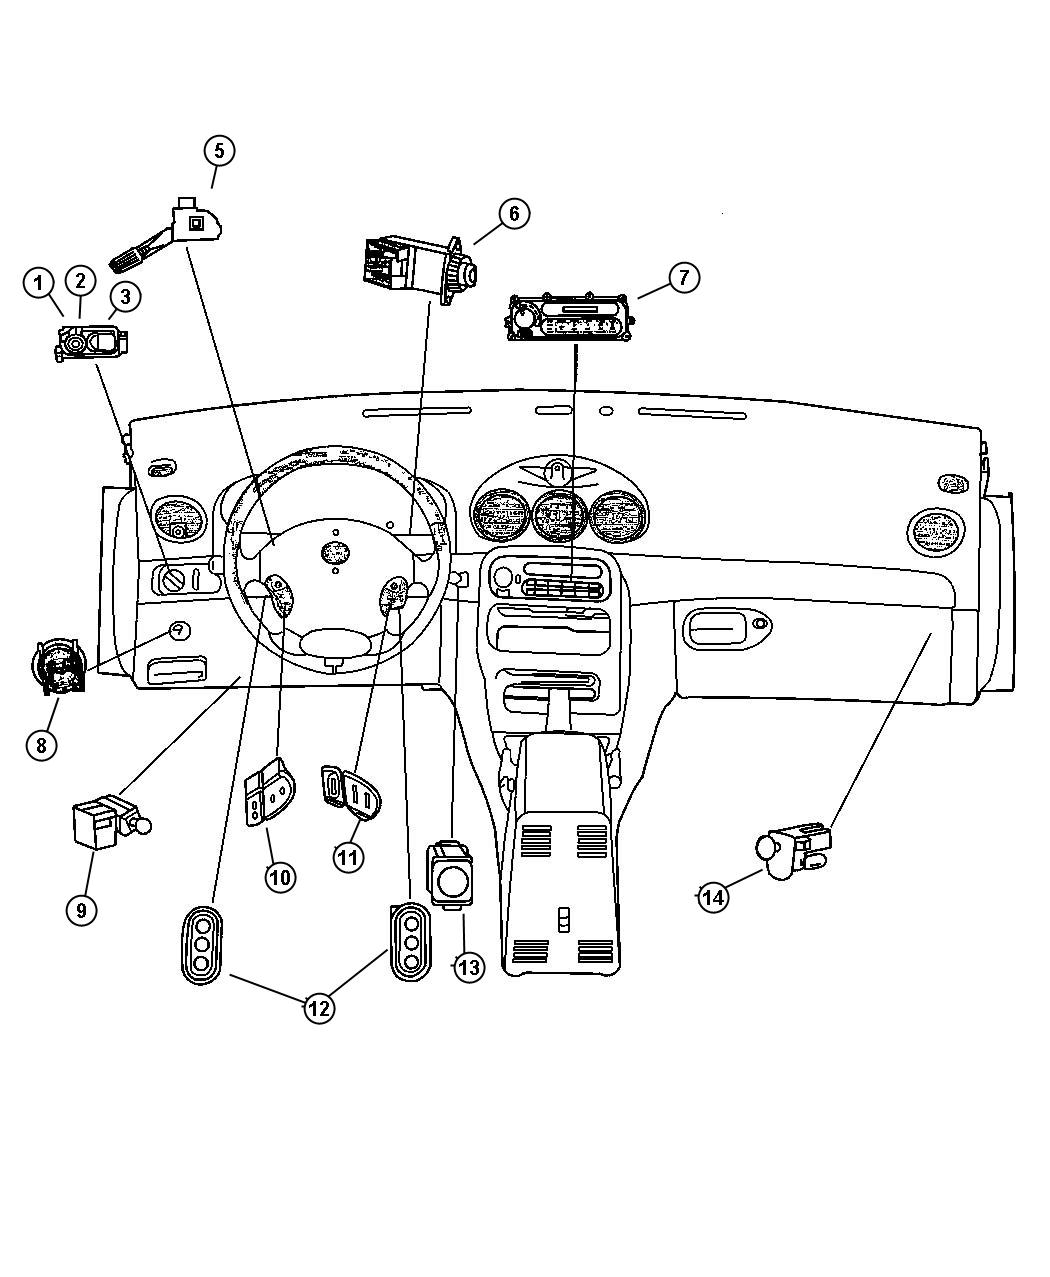 top suggestions 2000 chrysler concorde stereo wiring diagram :